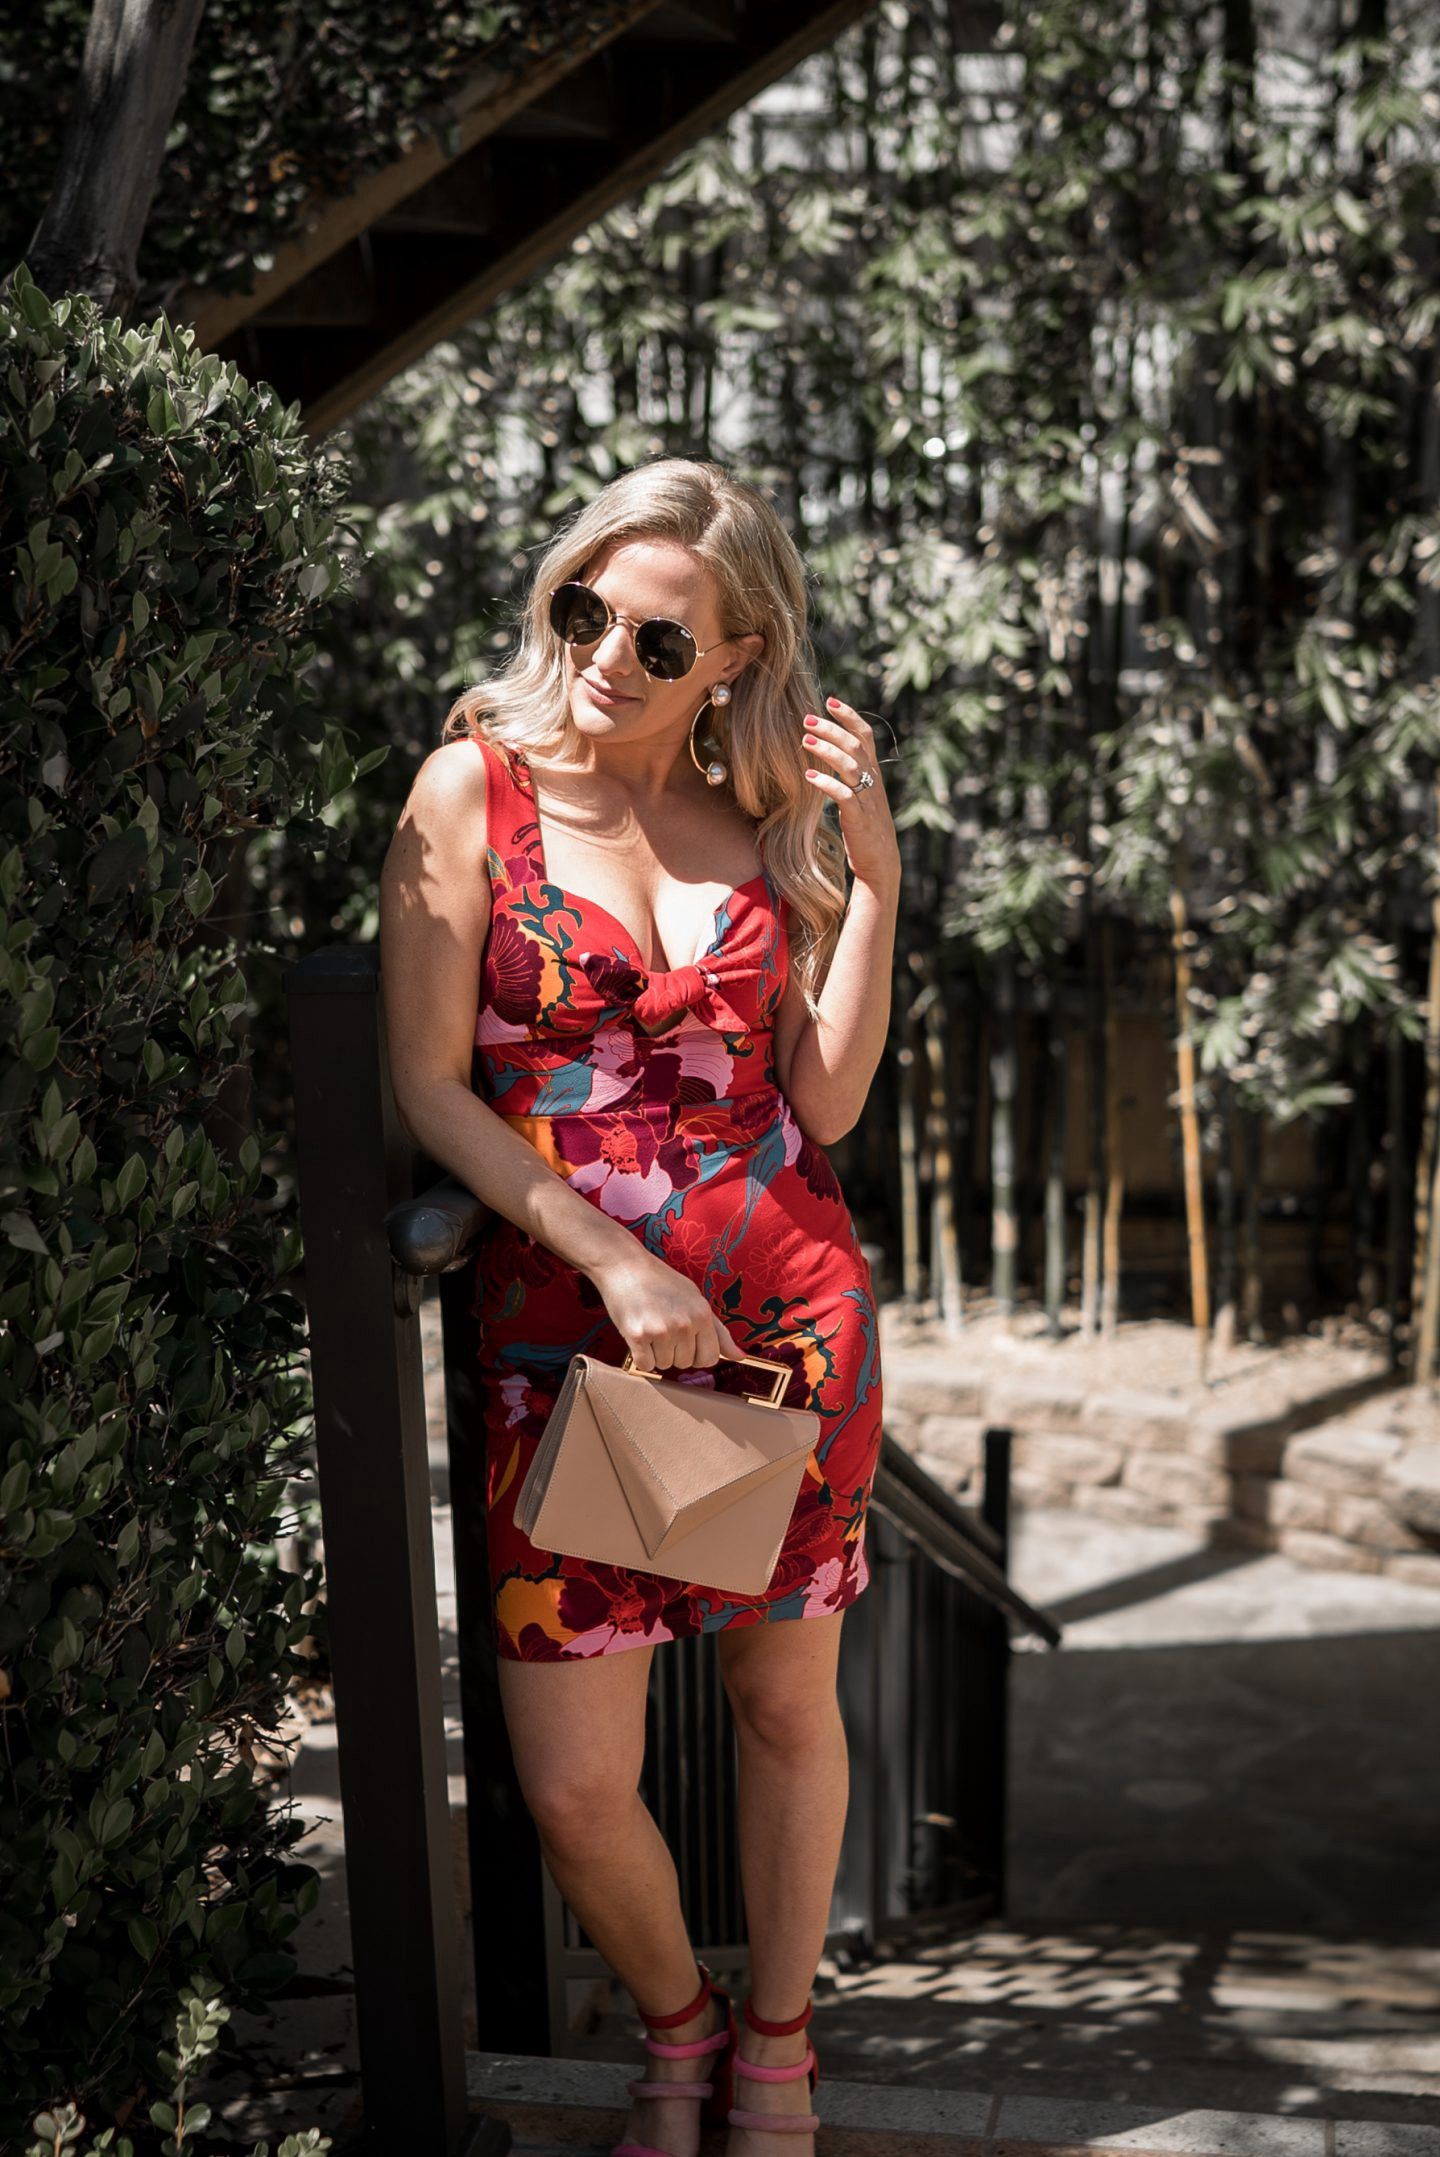 Trendy & Stylish Summer Date Night Outfit Ideas by popular Orange County fashion blogger Dress Me Blonde